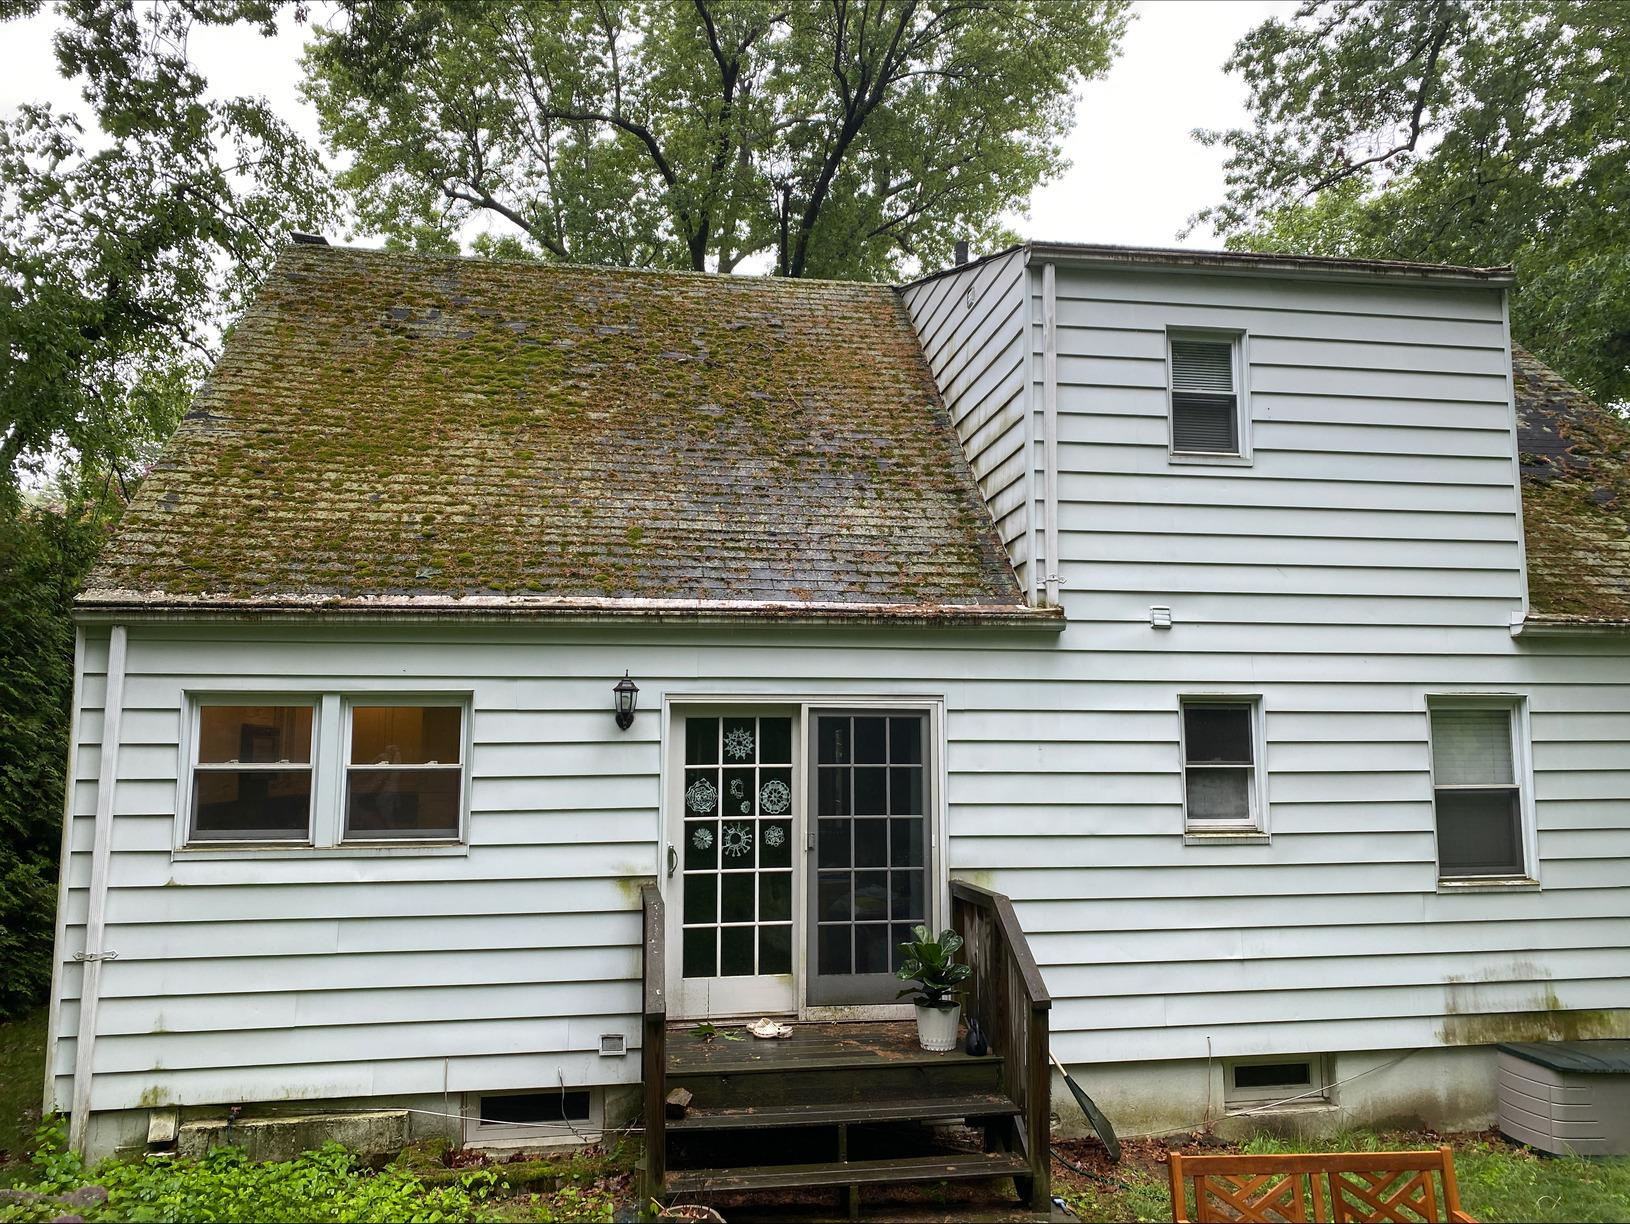 Mossy Roof Transformation in Tarrytown, NY - Before Photo